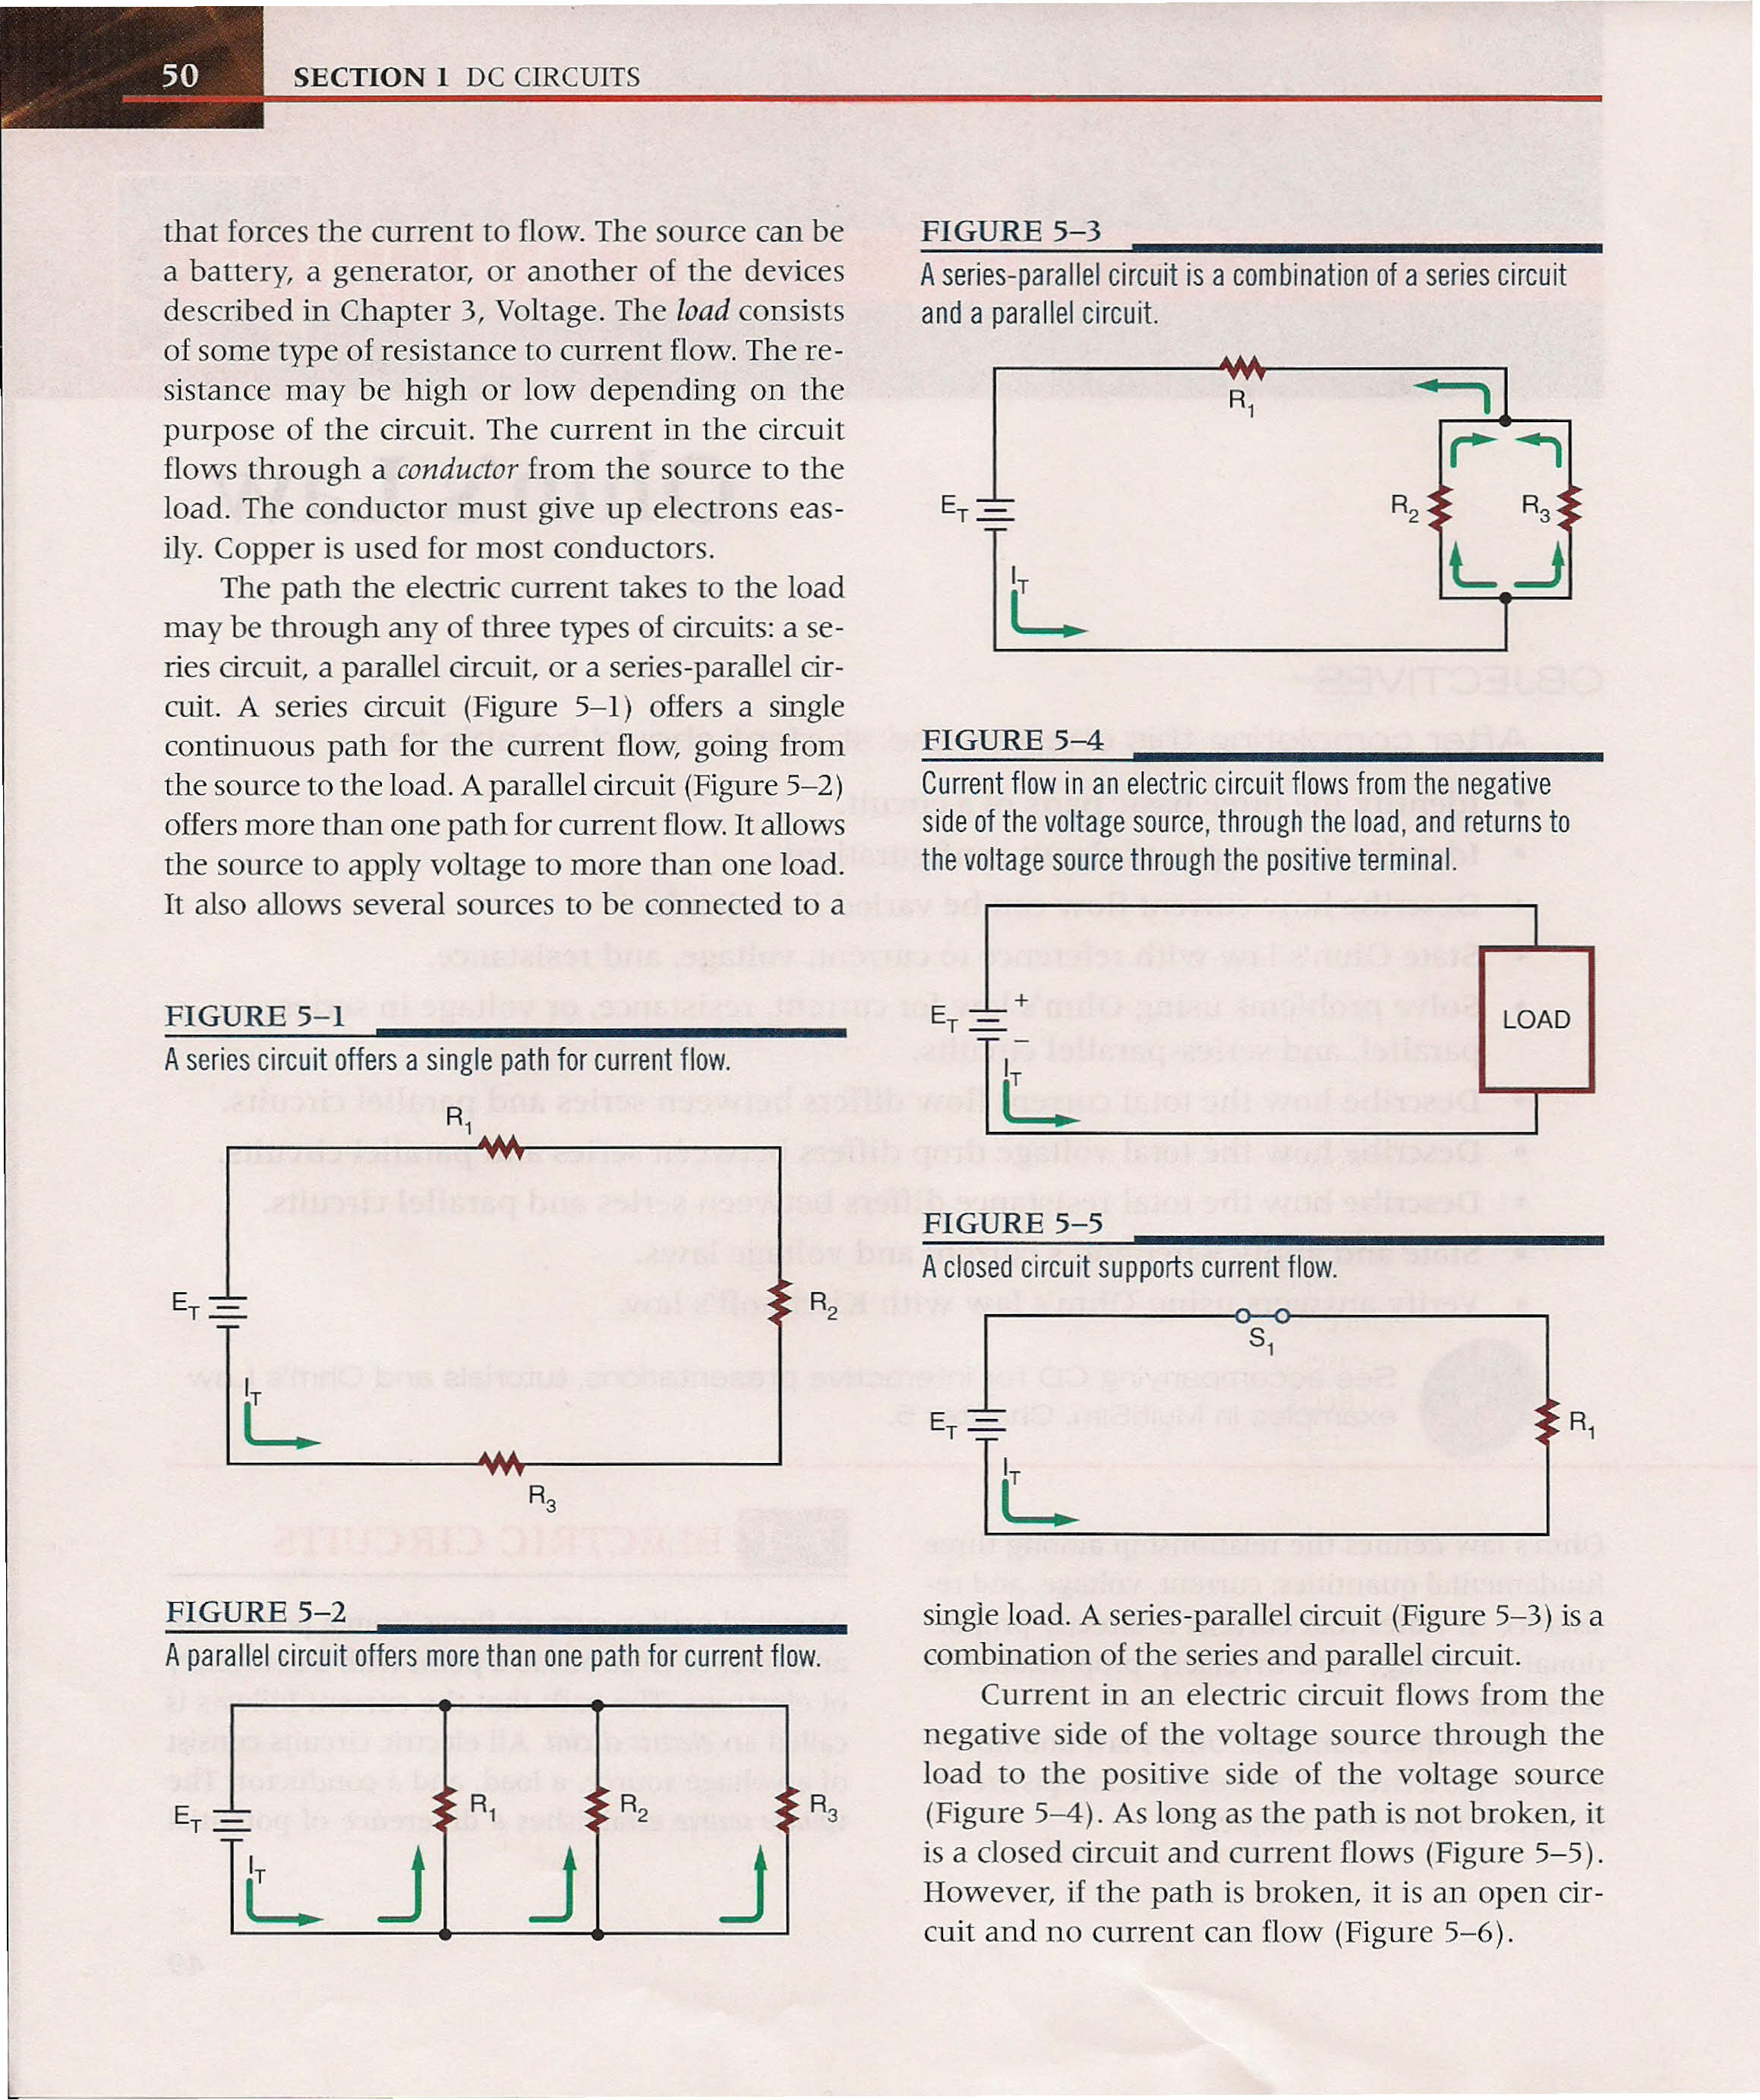 Mi Electric Circuits Pdf Series Circuit With A Voltage Source Such As Battery Or In This Section 1 Dc That Forces The Current To Flow Can Be